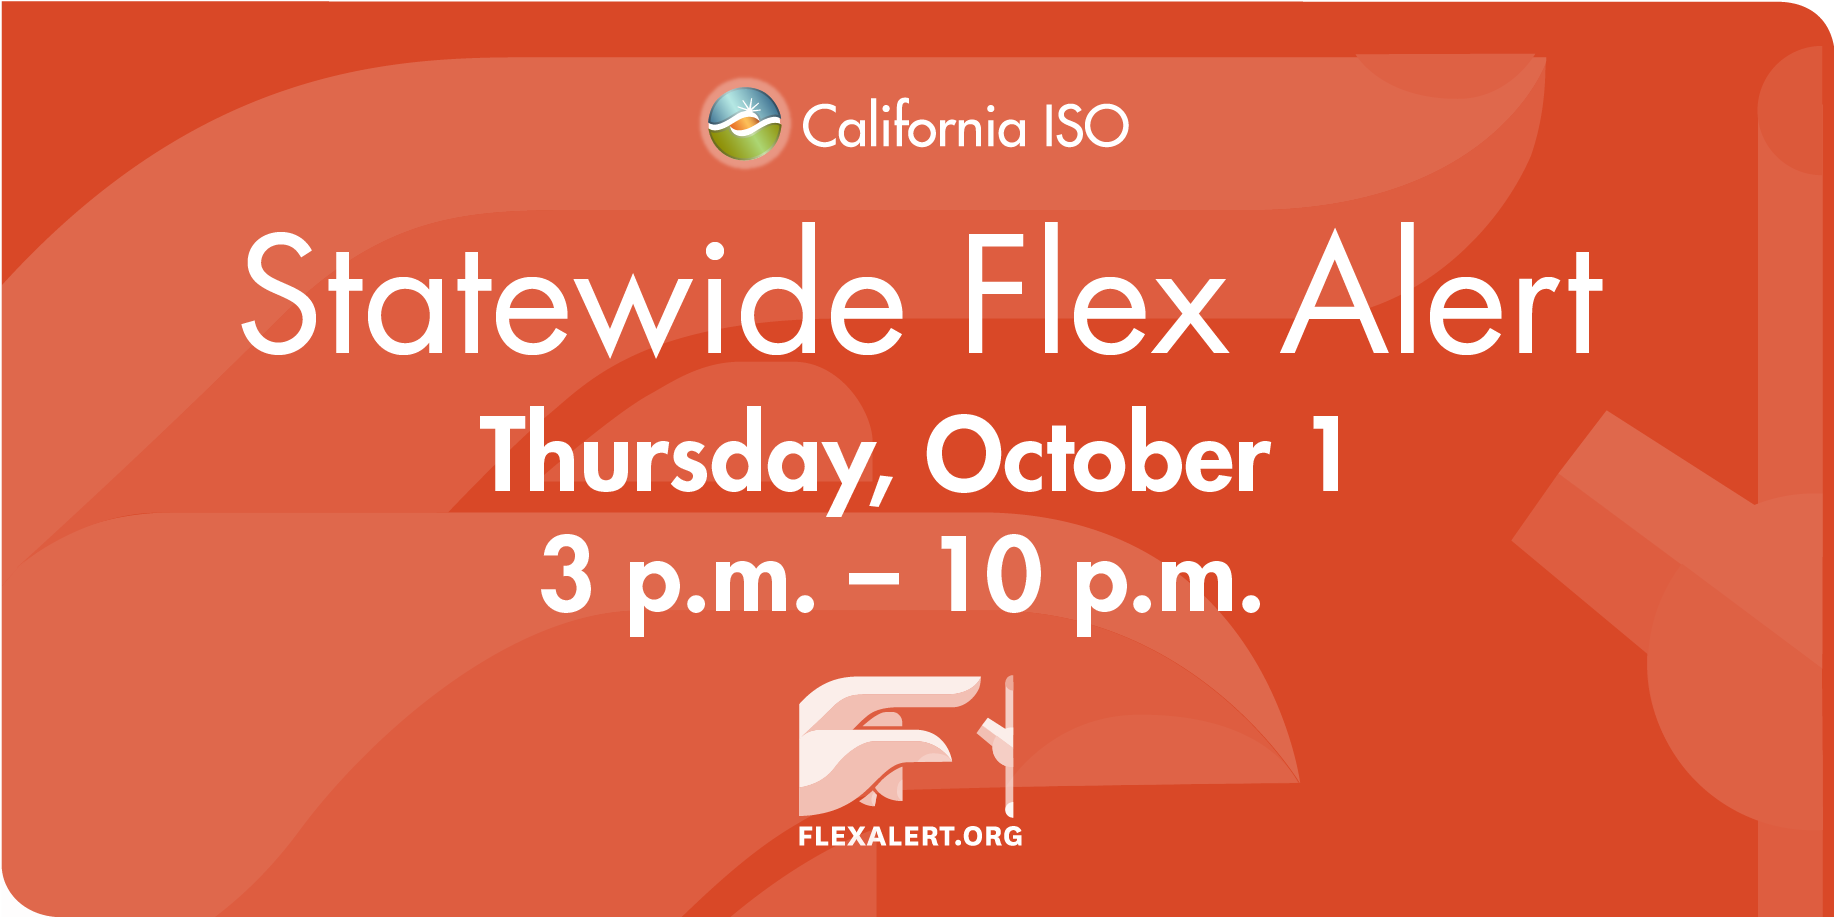 ISO News Release: Flex Alert issued for tomorrow, calling for energy conservation